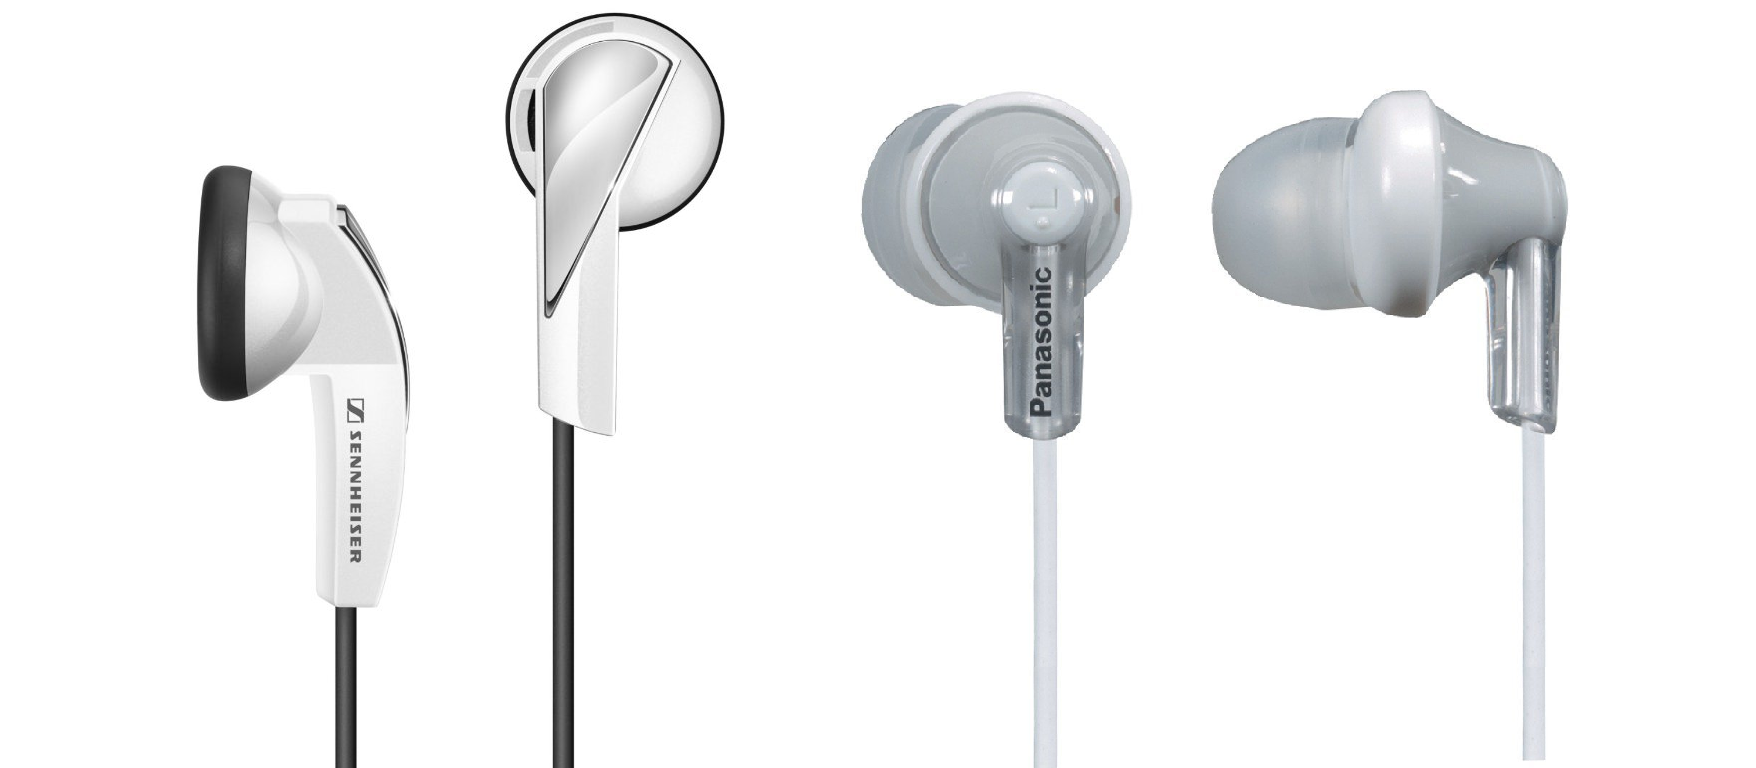 The Ultimate Guide To Earbuds, Earphones, IEMs, And In Ear ...